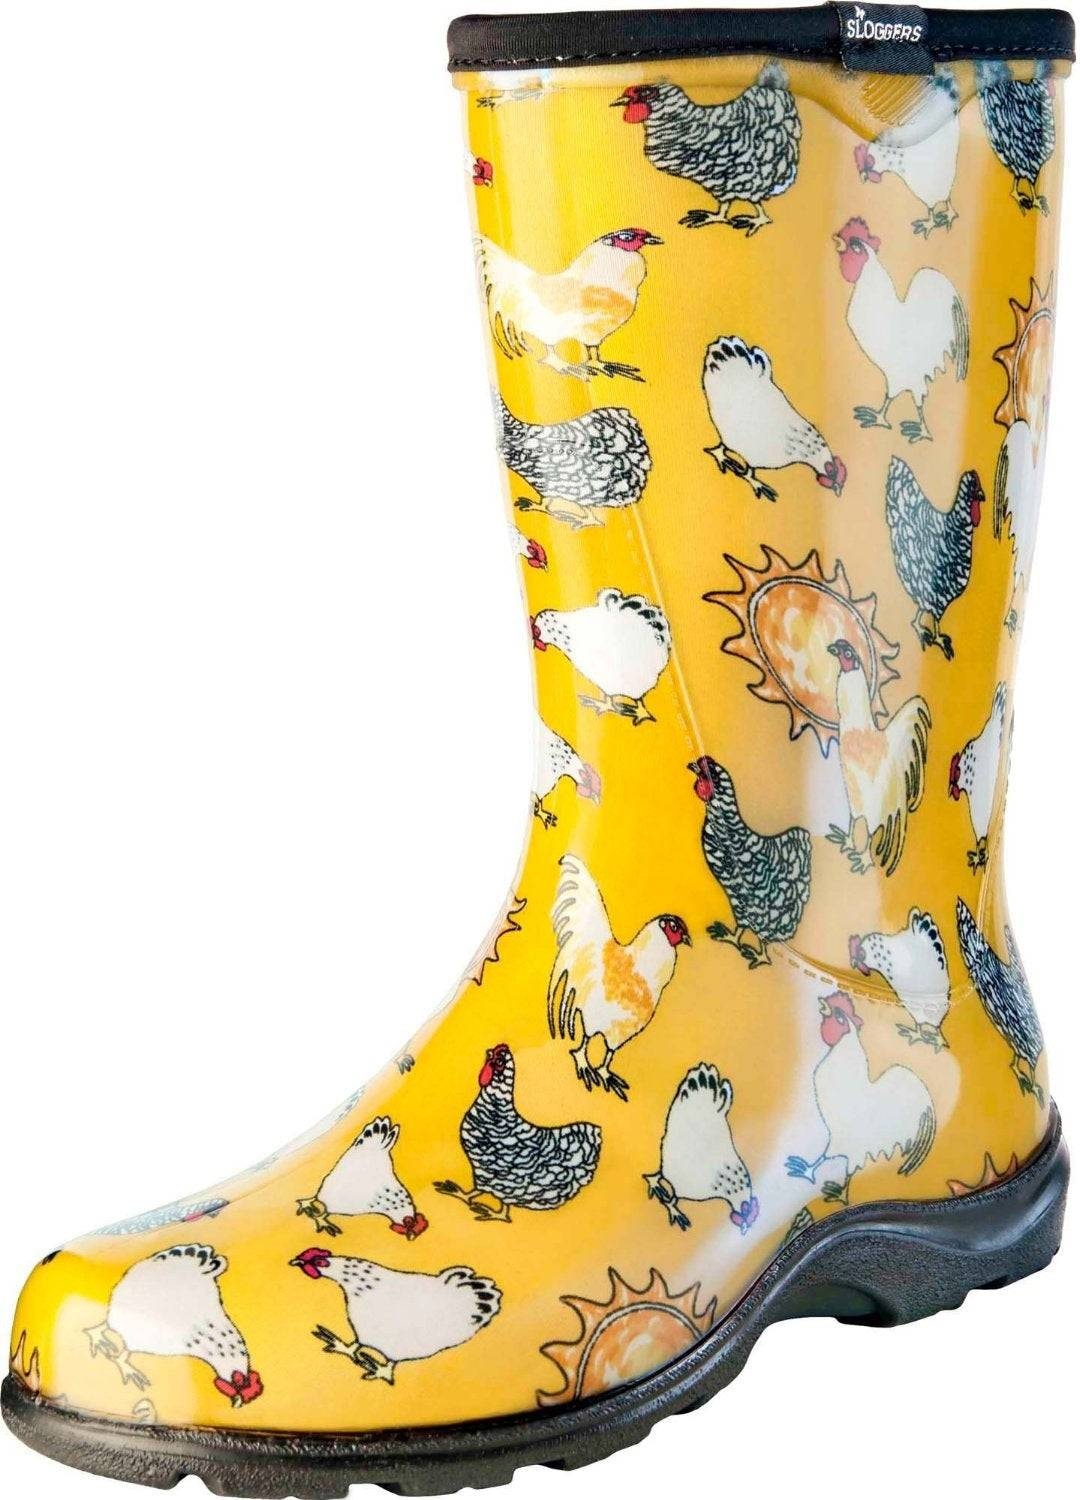 Sloggers 5016cdy10 Women's Rain And Garden Boots, Size 10, Daffodil Yellow